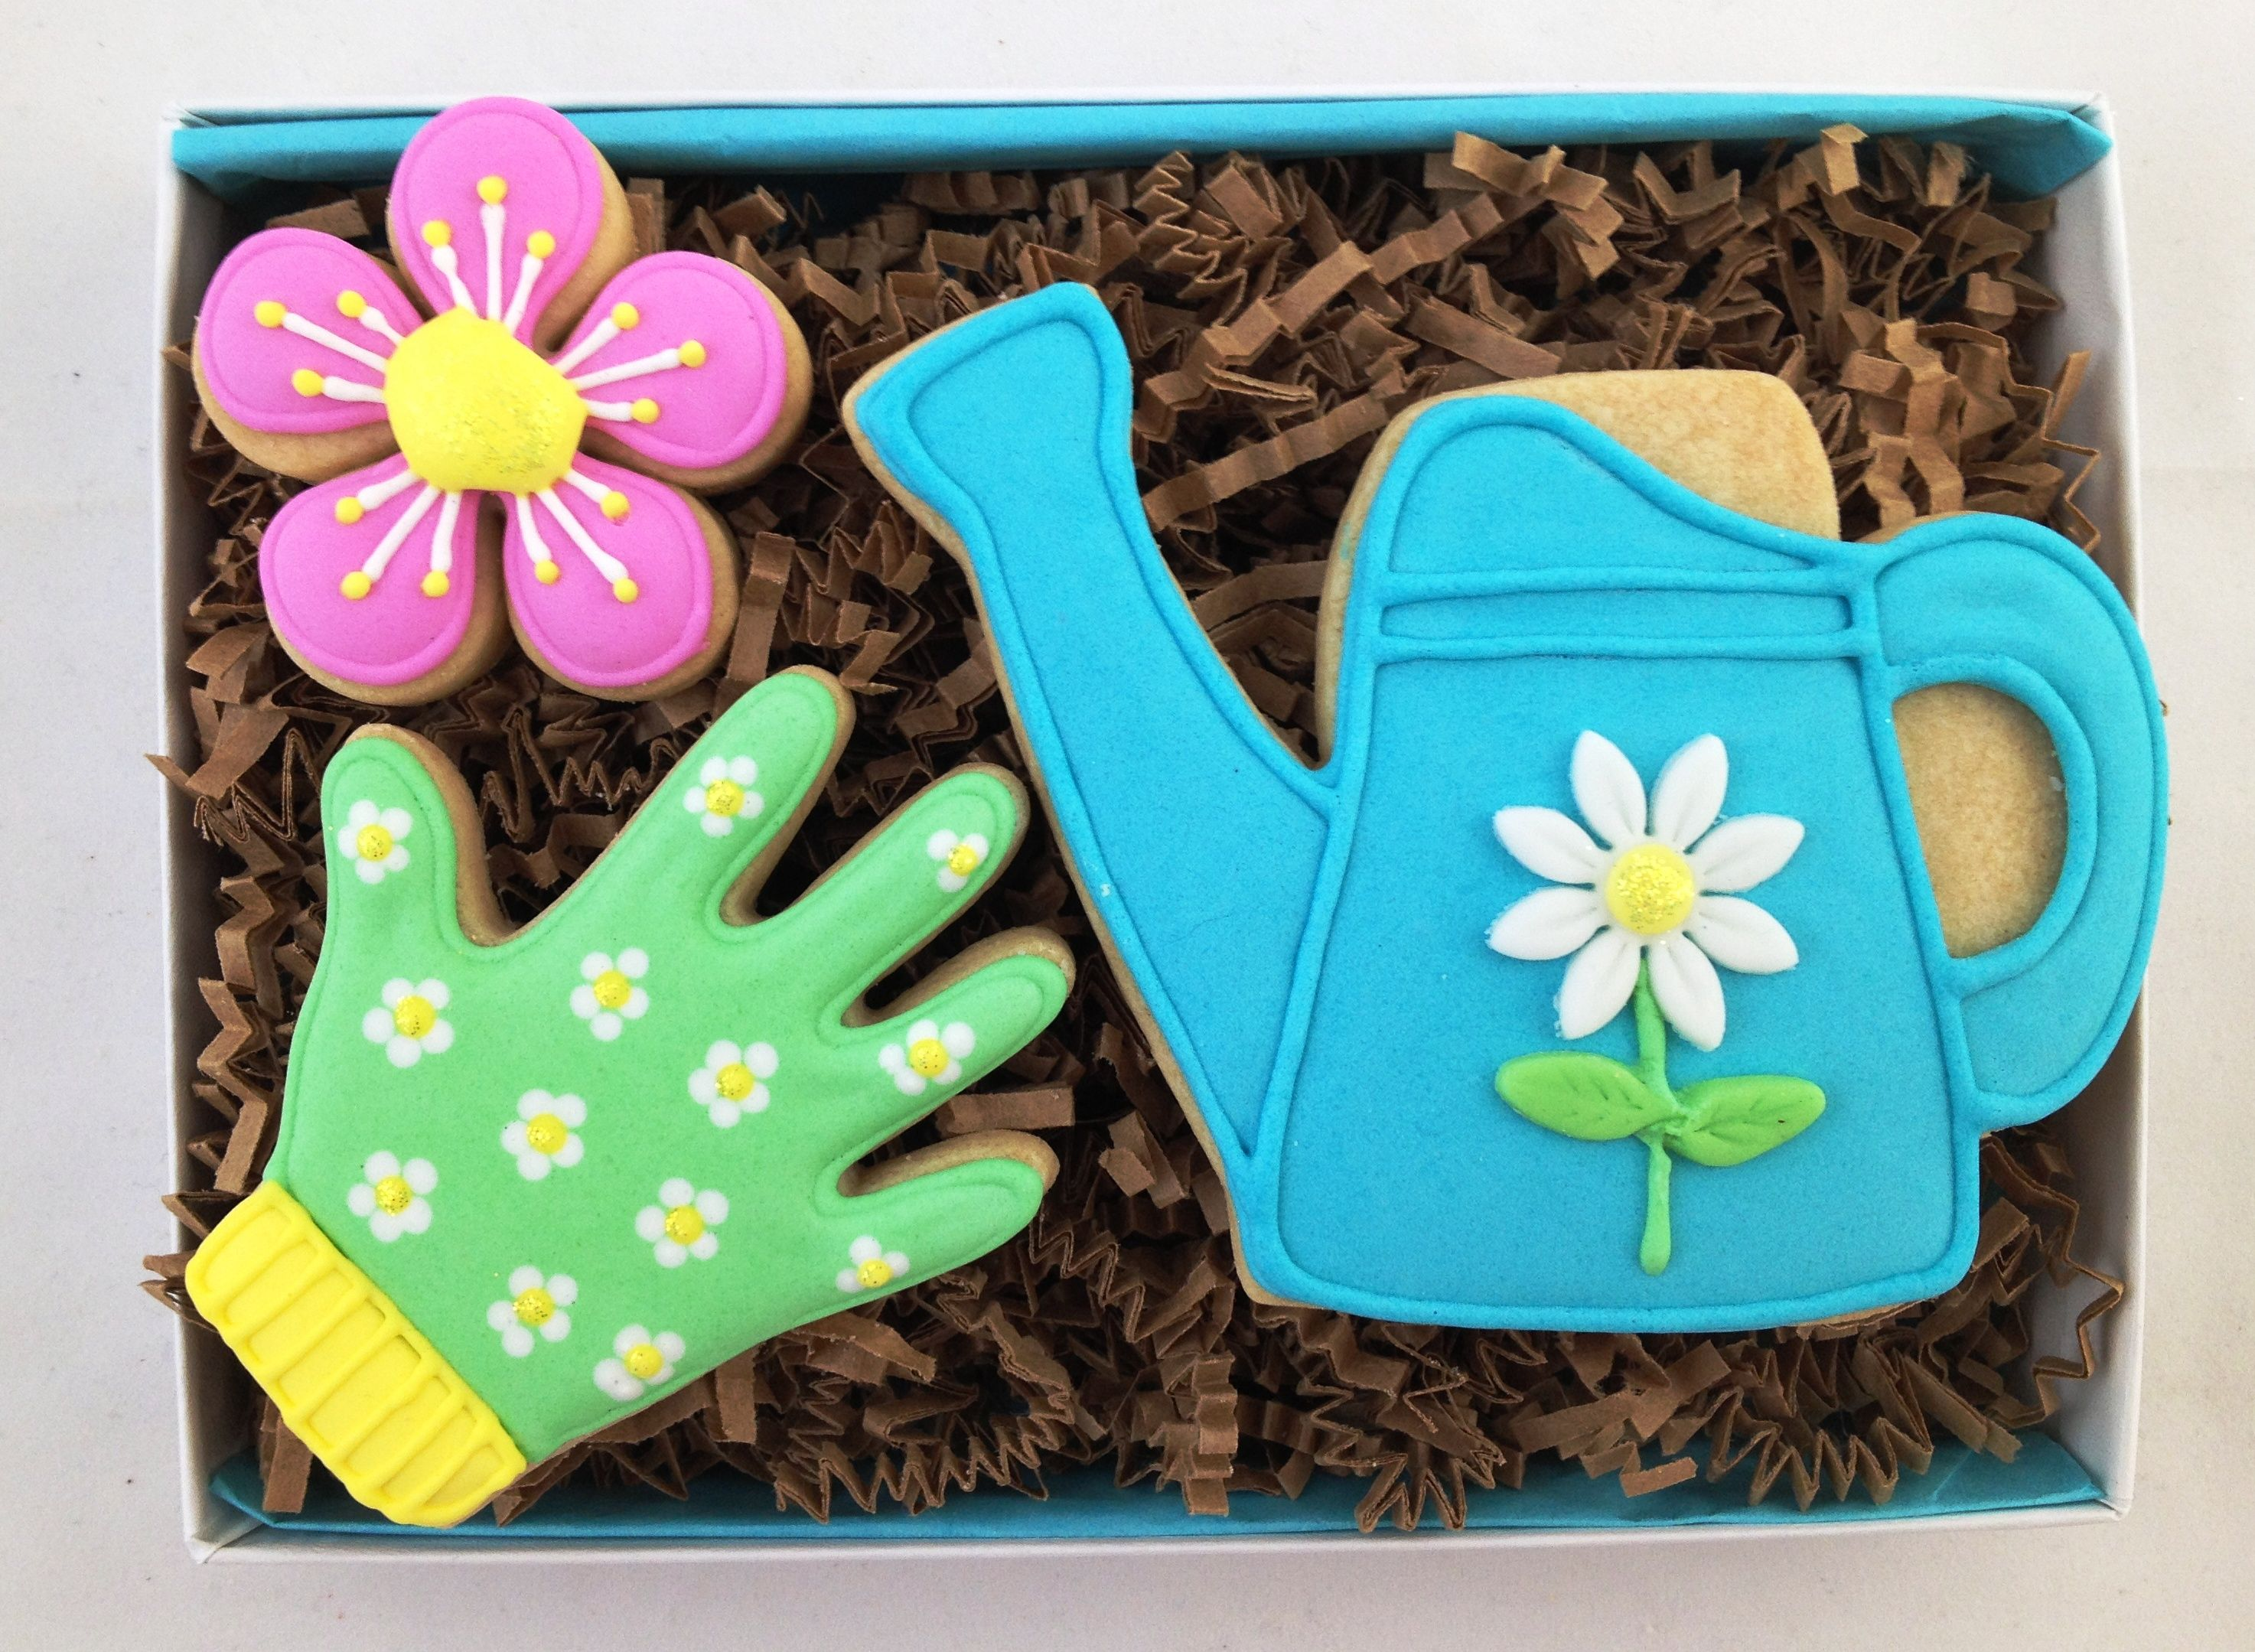 Garden cookies - For all your cake decorating supplies, please visit craftcompany.co.uk